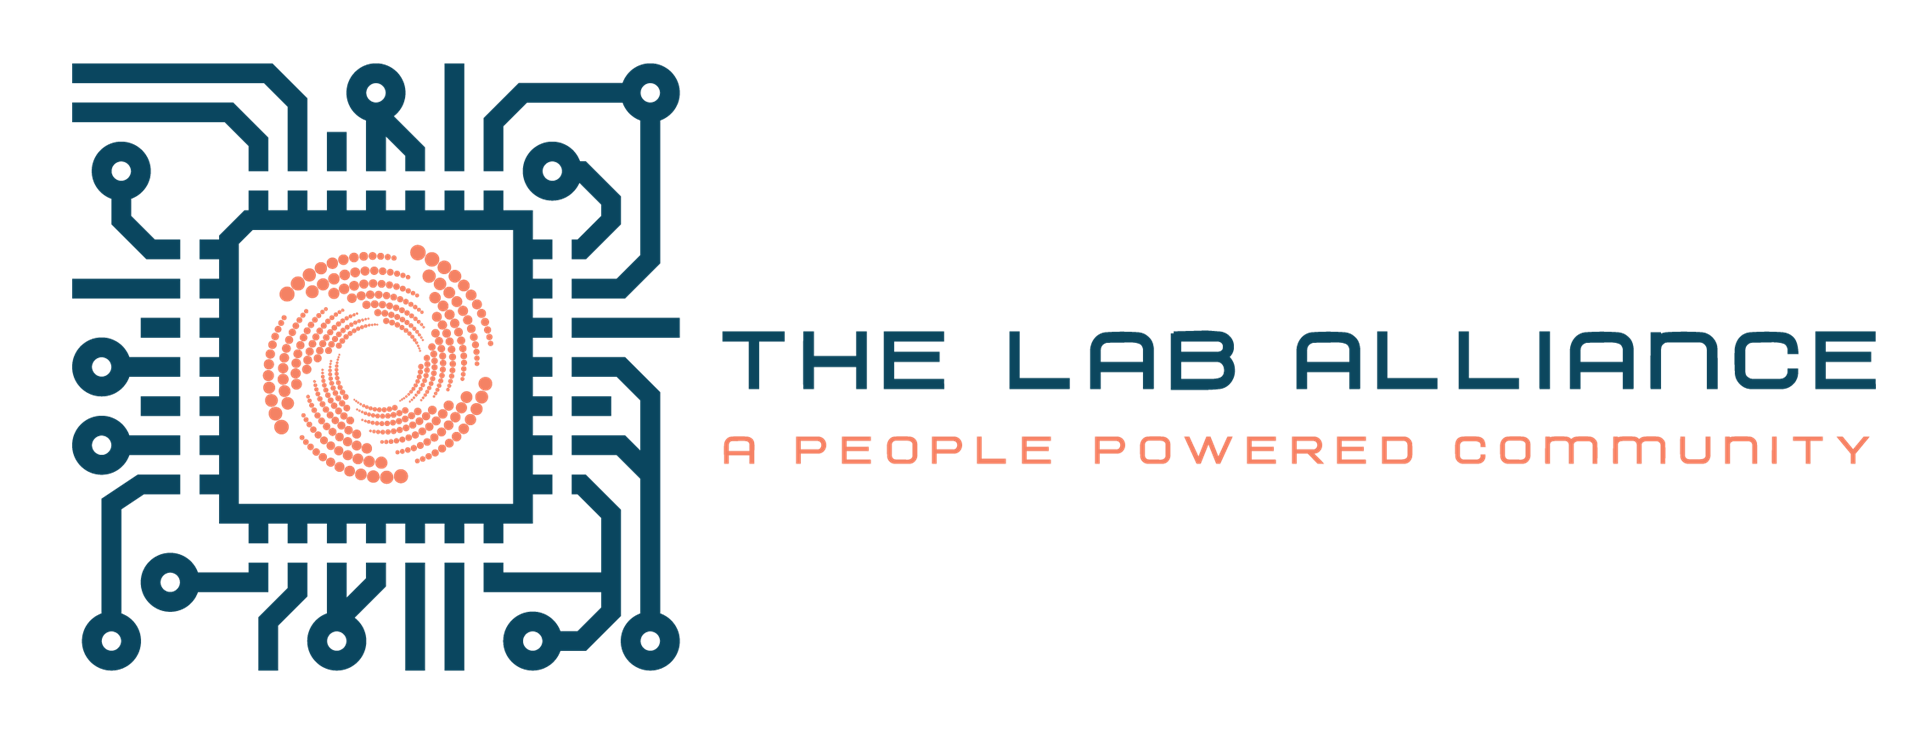 LiAison Labs, a business intelligence firm specializing in AI solutions, has launched The Lab Alliance economic accelerator